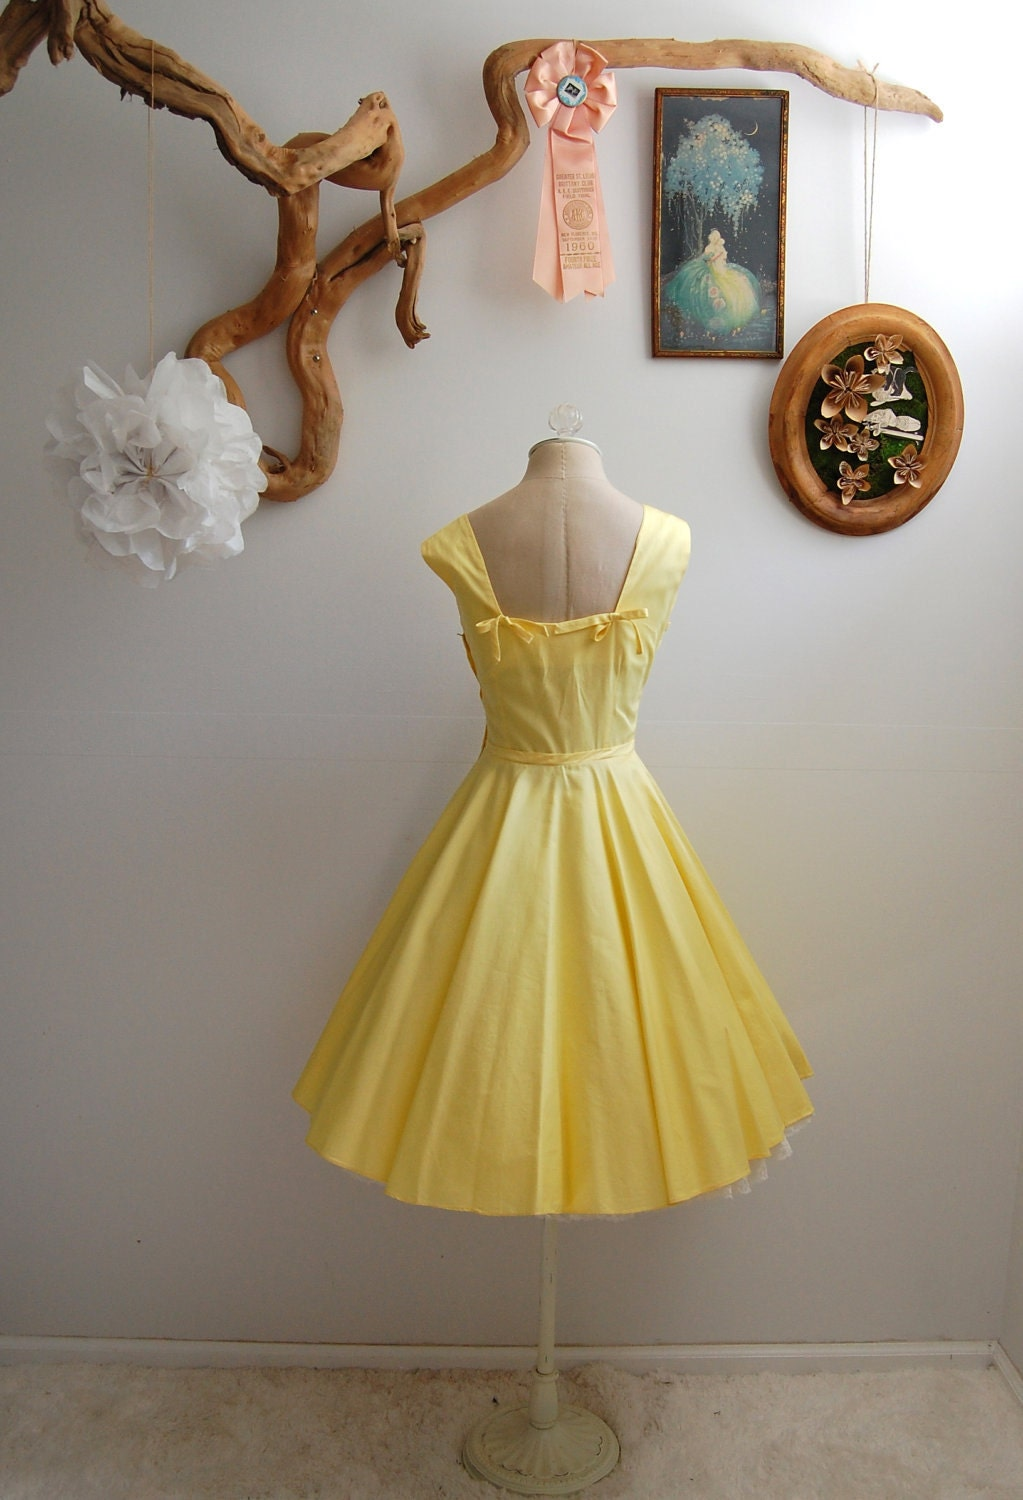 The Lucille- Vintage 1950s Yellow Cotton Full Skirt Dress